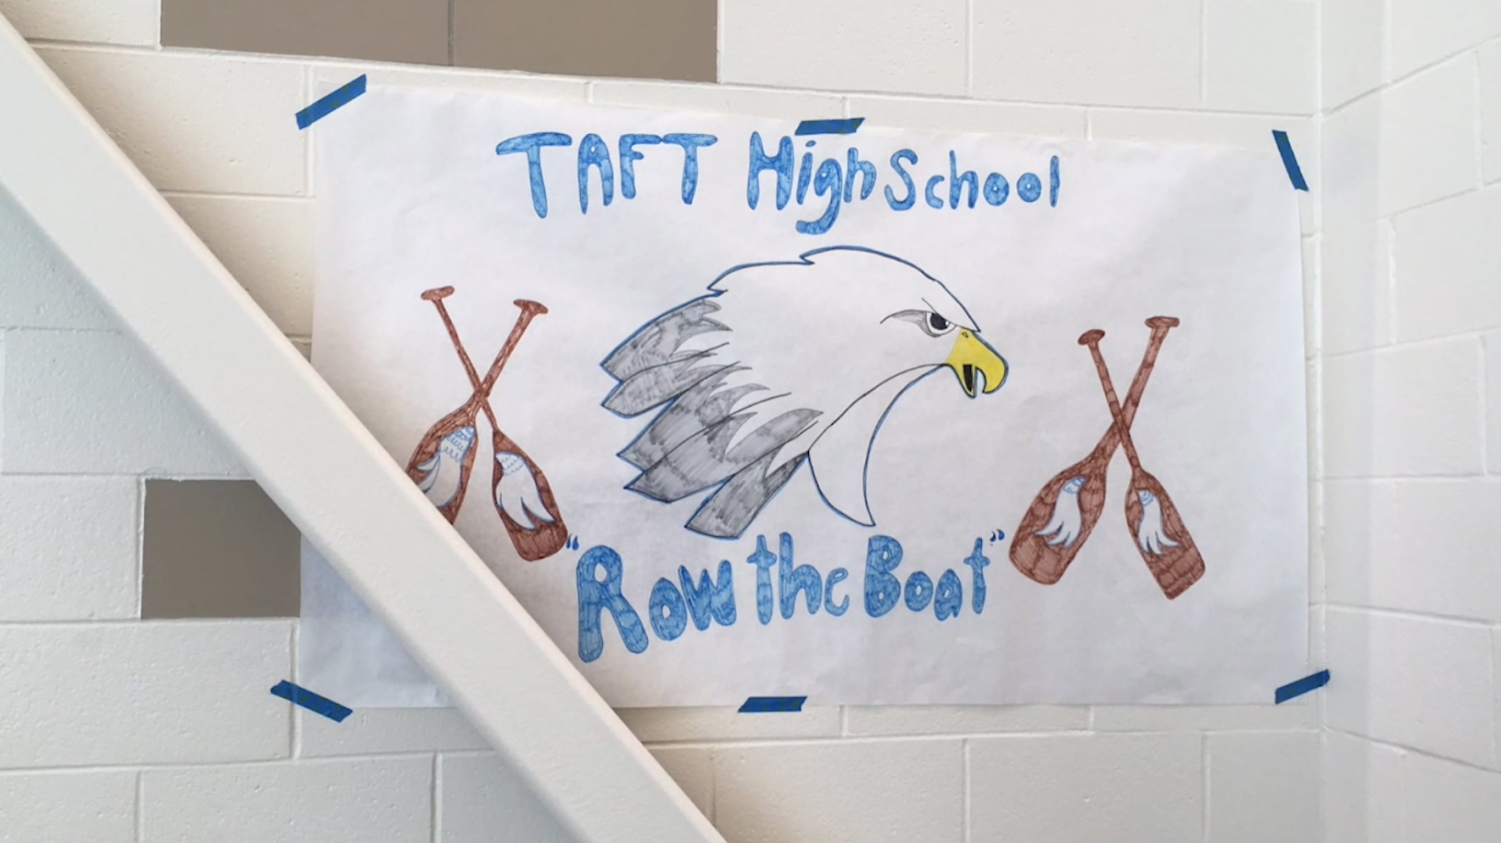 Handmade poster supporting the girls swimming team.